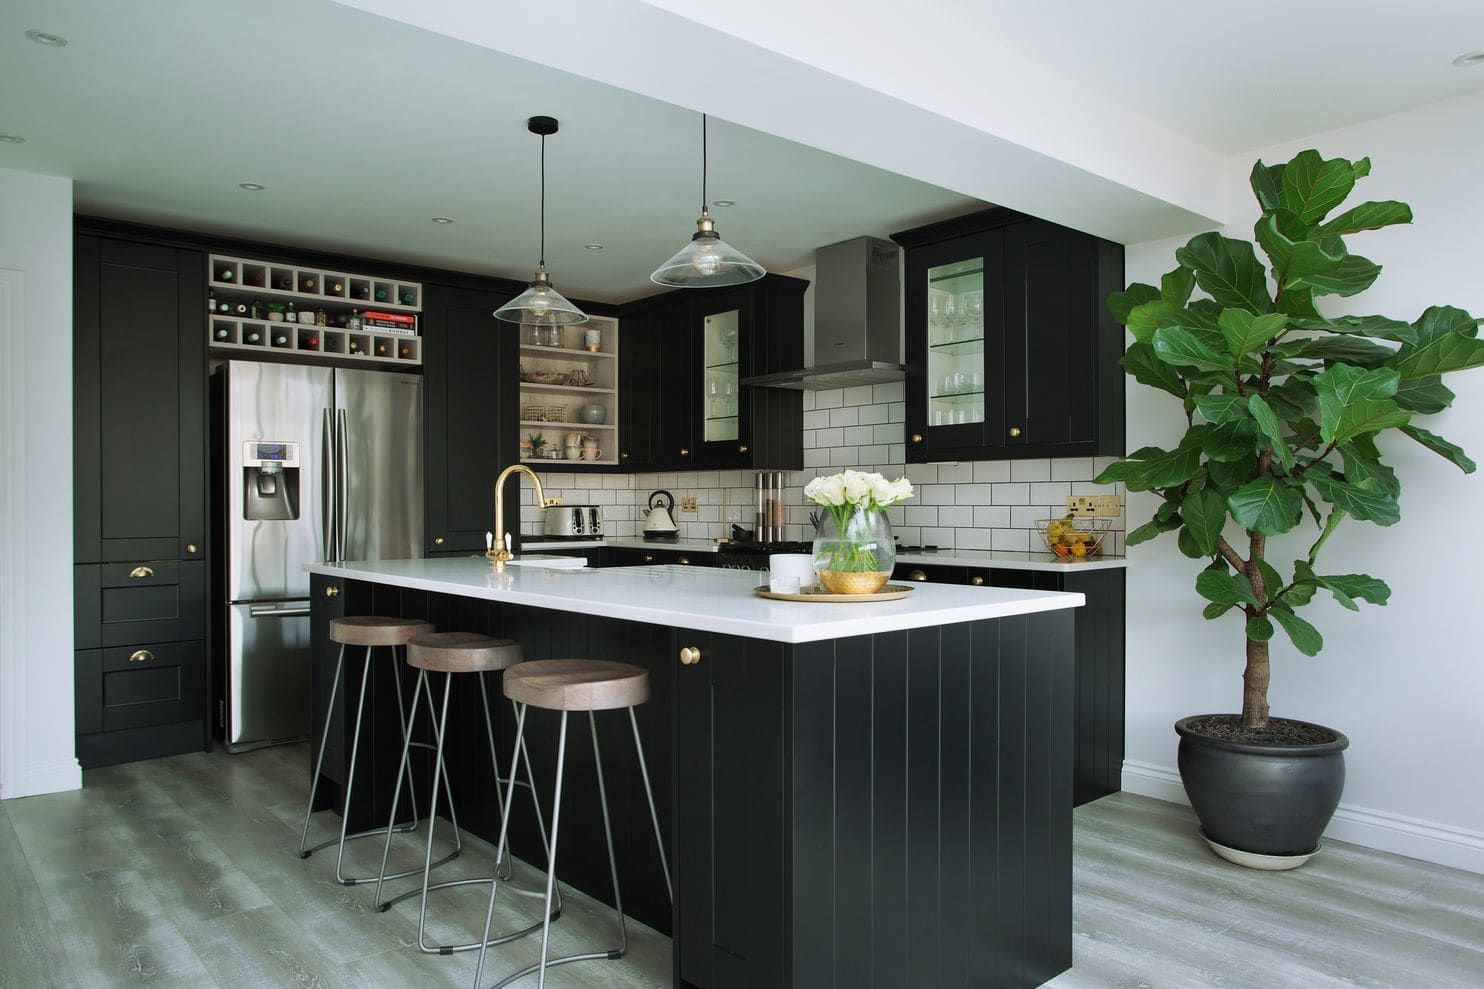 10 Home Design Trends To Watch Out For In 2019 Luxury Home Decor Interior Design Trends Luxury Interior Design